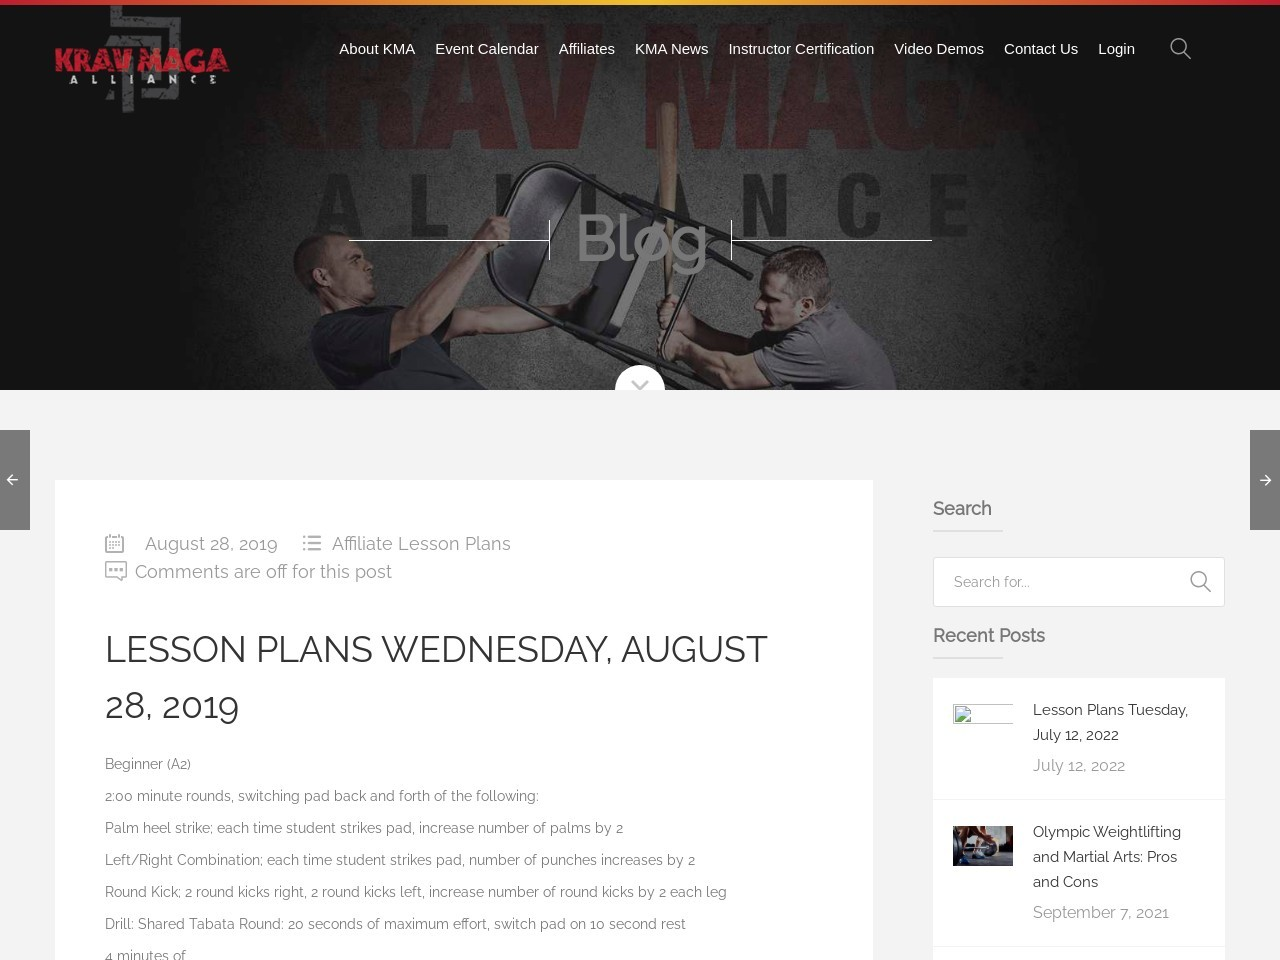 Lesson Plans Wednesday, August 28, 2019